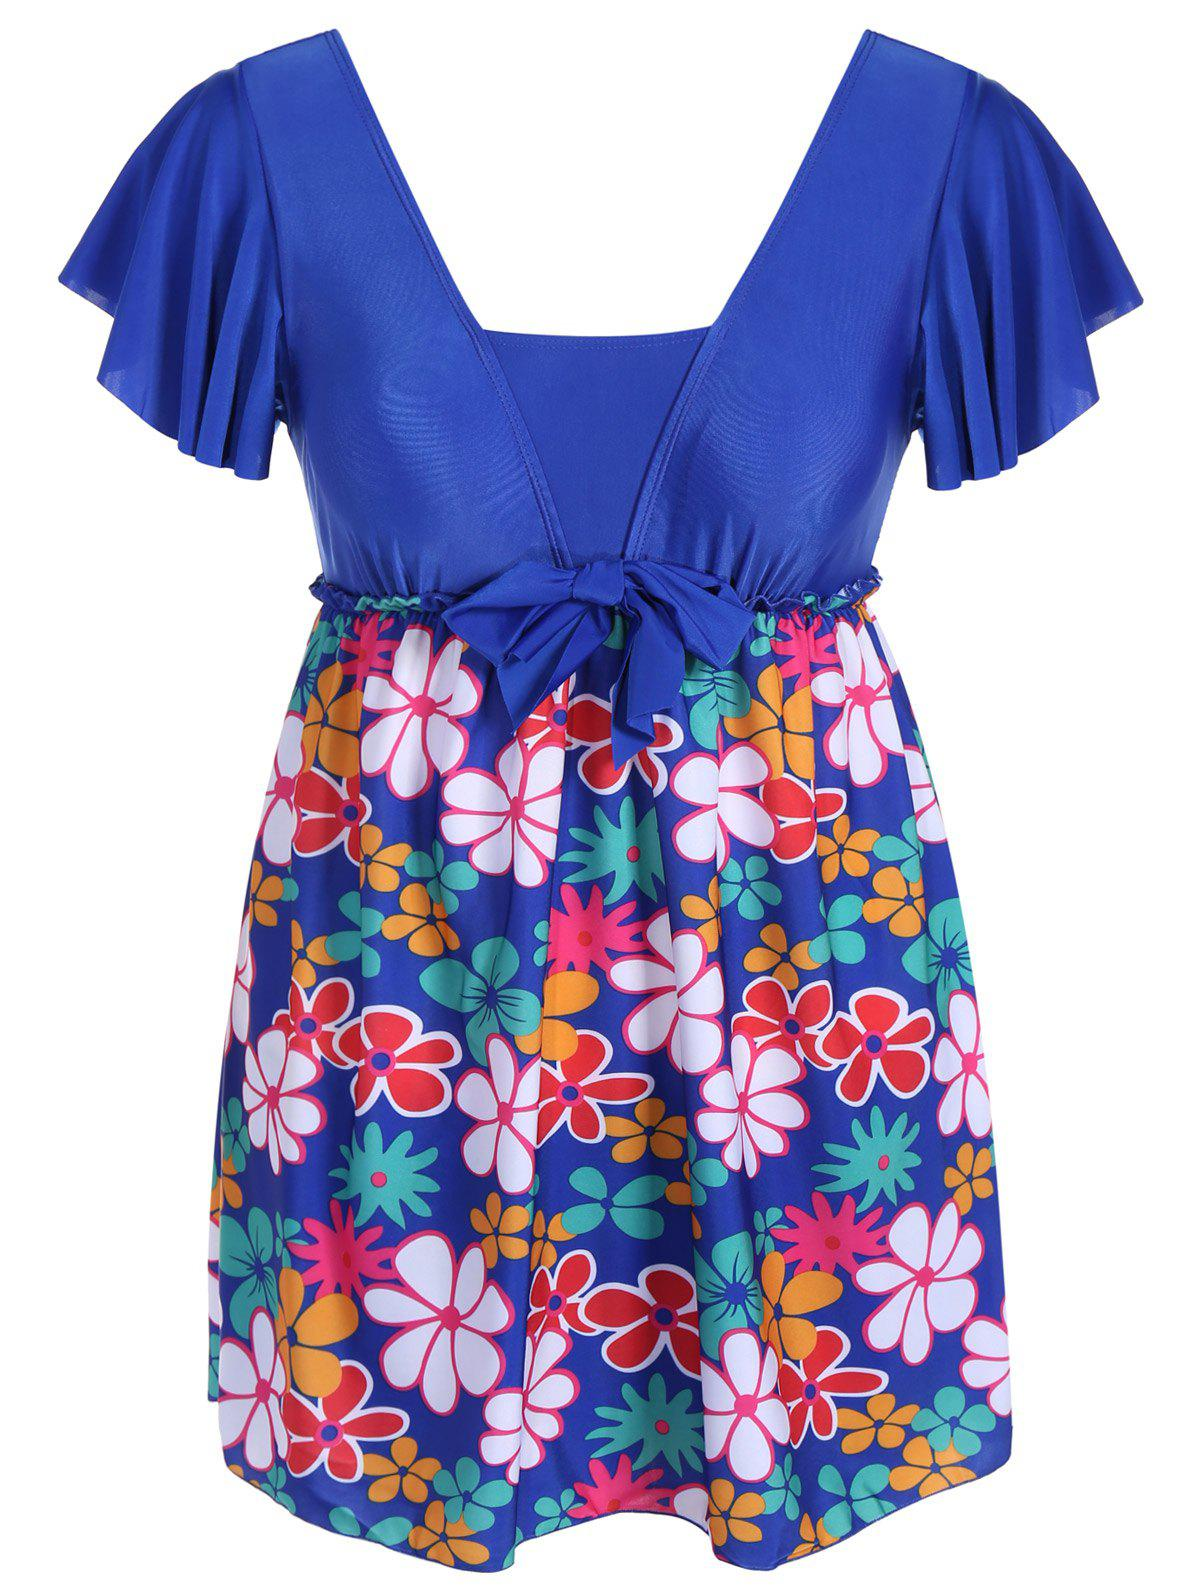 Refreshing Floral Print Square Collar Short Sleeve Swimsuit For Women - SAPPHIRE BLUE 5XL